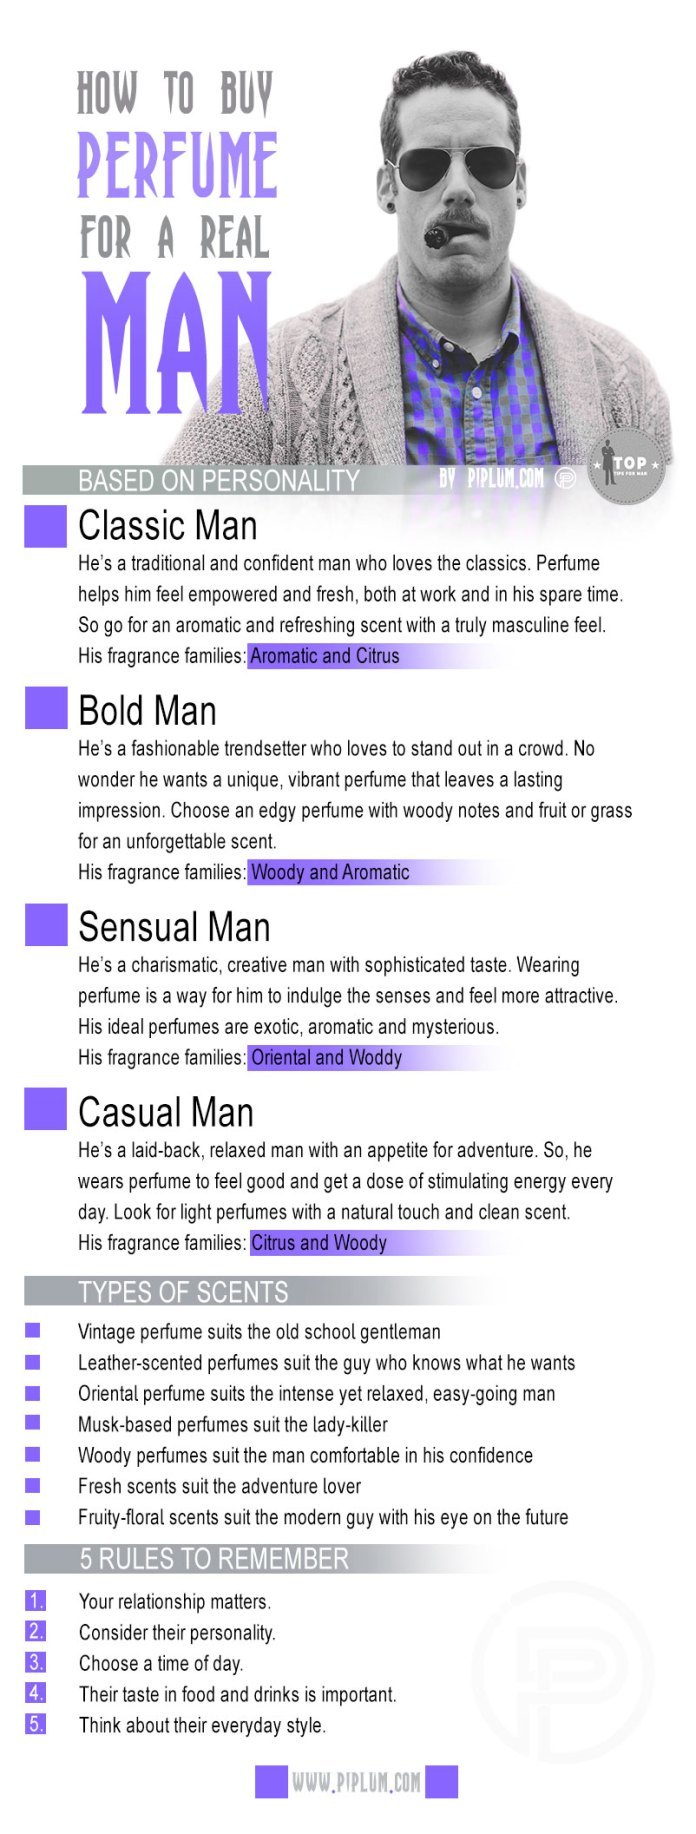 How-to-buy-perfume-for-a-real-man-gifting-guide-poster-christmas-birthday-valentines-day-tips-hacks-list